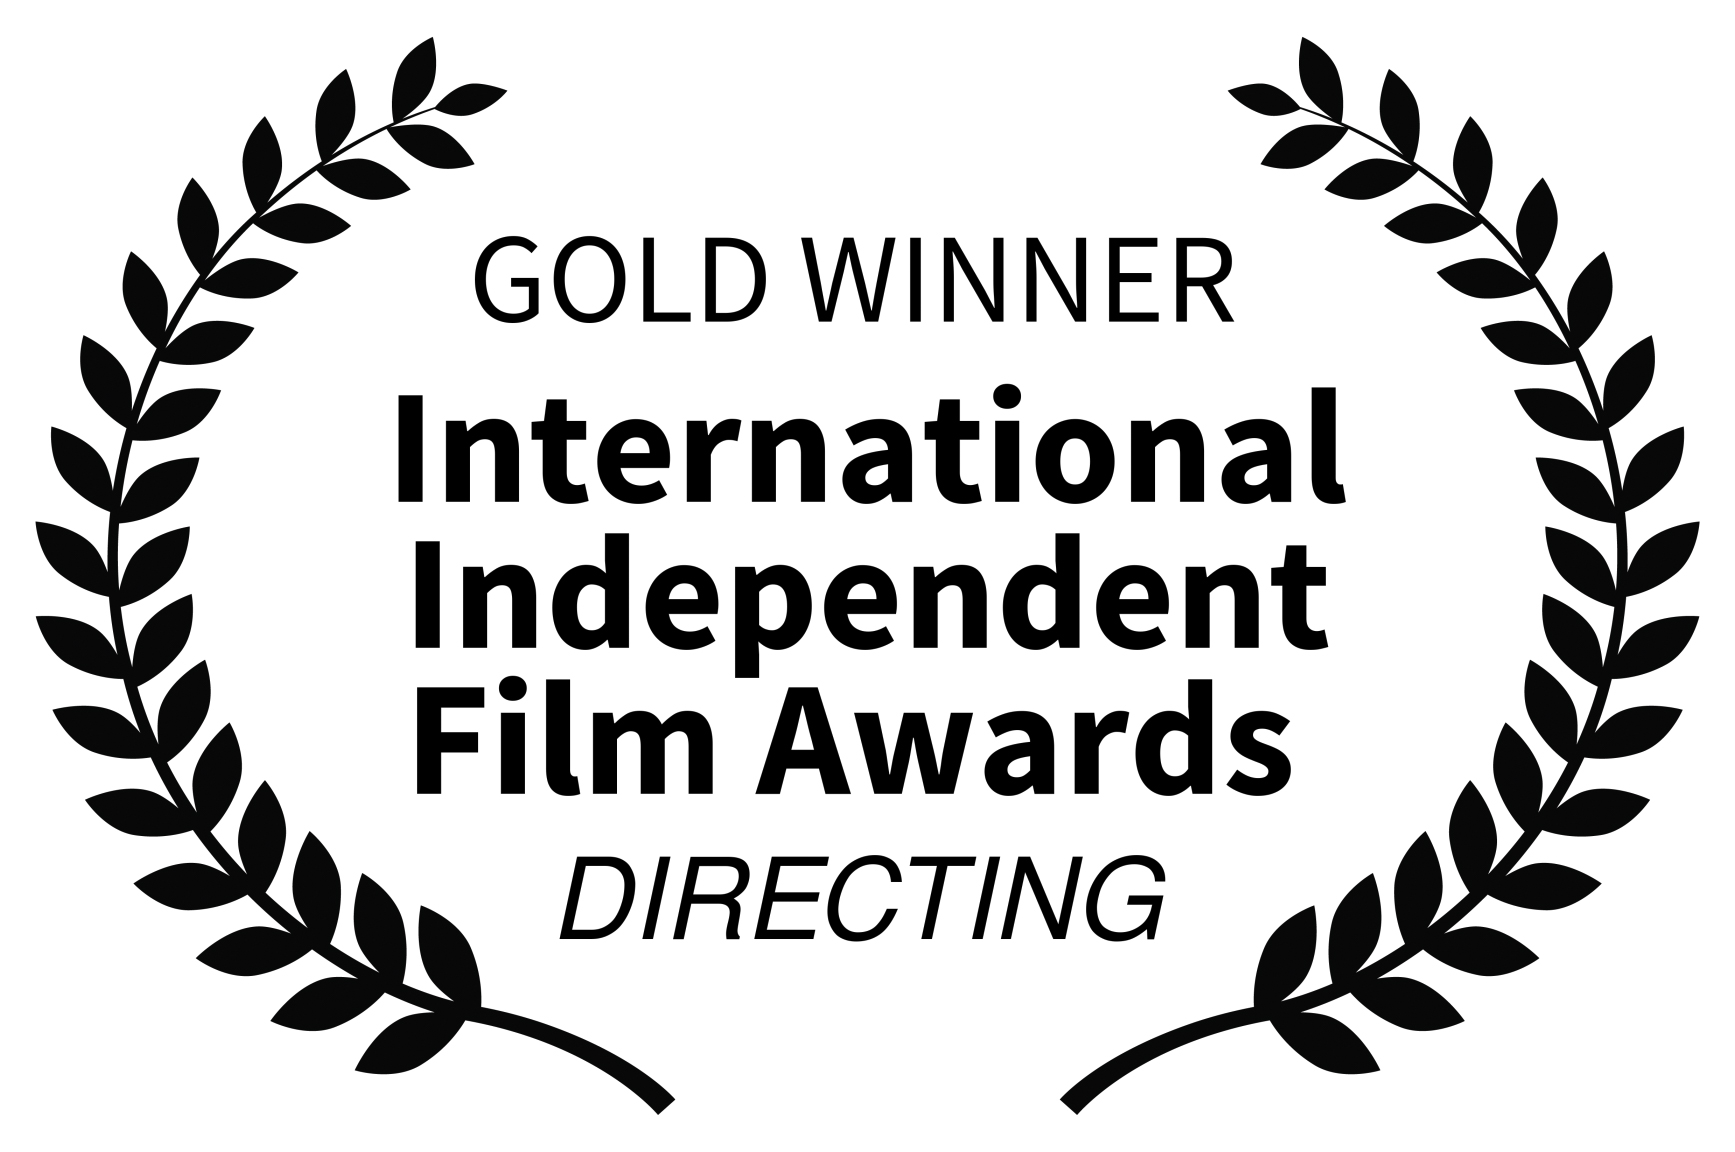 GOLD WINNER  - International Independent Film Awards  - DIRECTING -.jpg